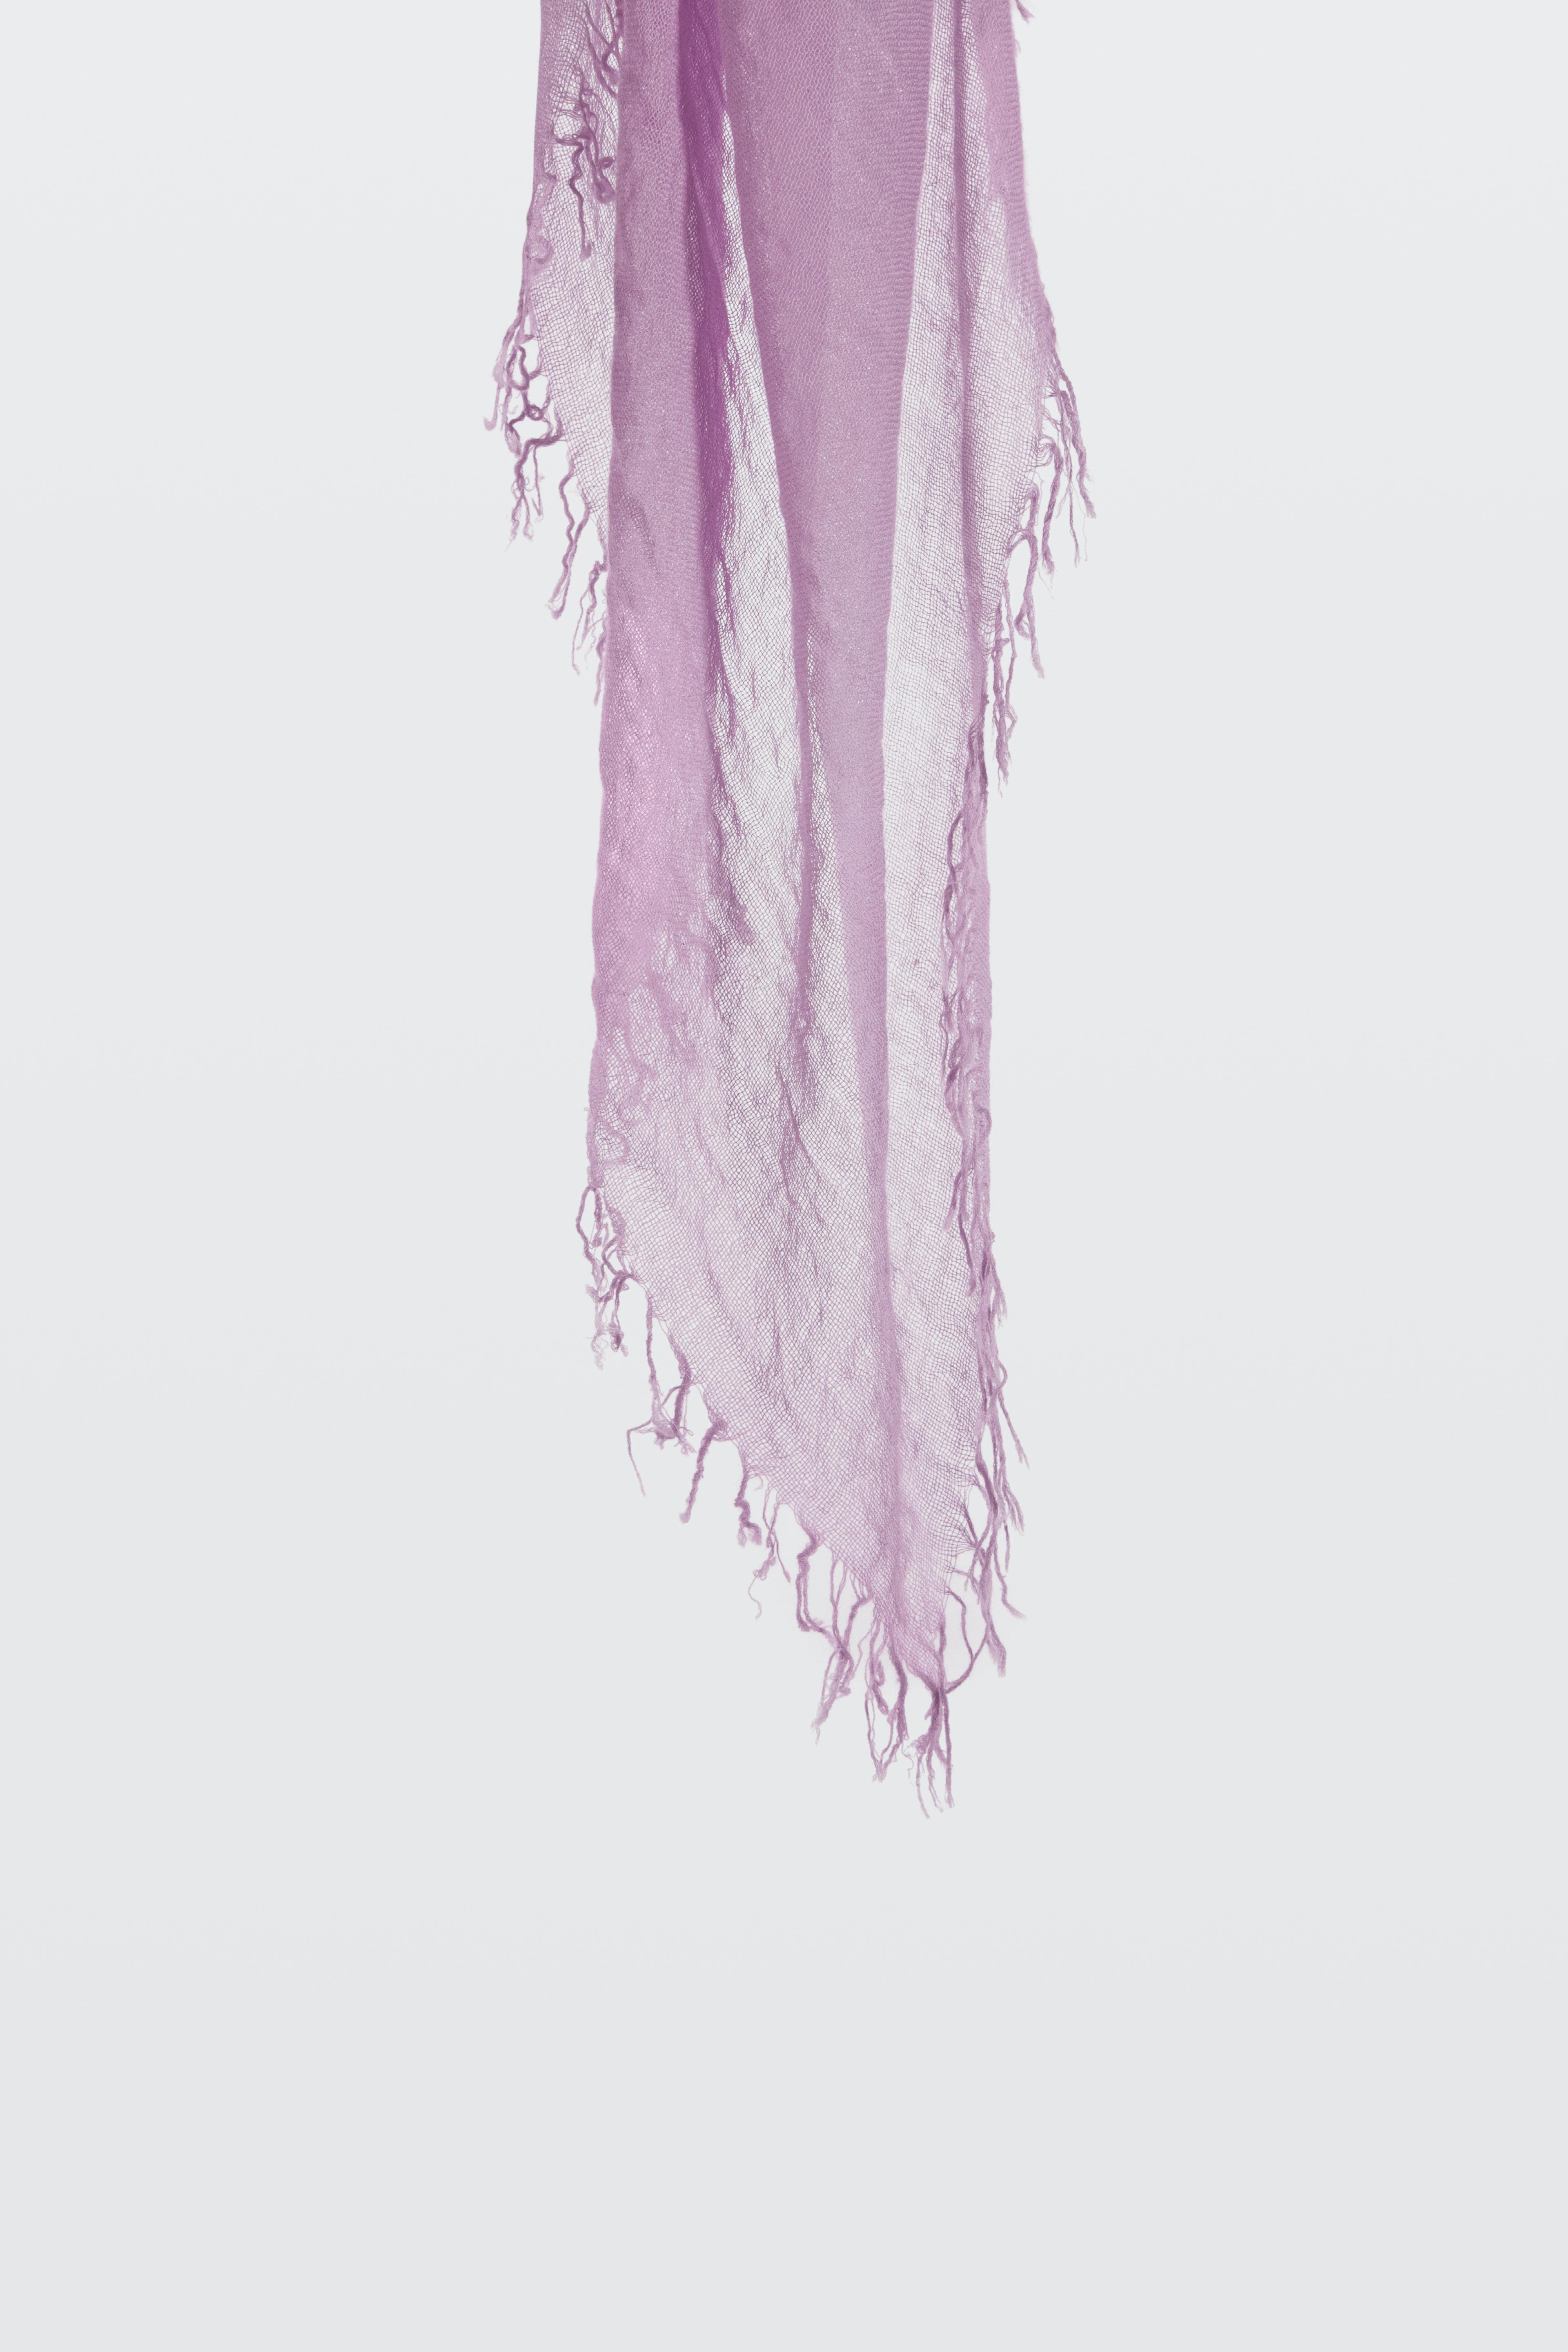 Outlet Order ROMANTIC ESCAPE printed scarf with handmade fringes 100 x 200cm Dorothee Schumacher Discount For Cheap Huge Range Of Free Shipping Cheap Quality rV1Vdf